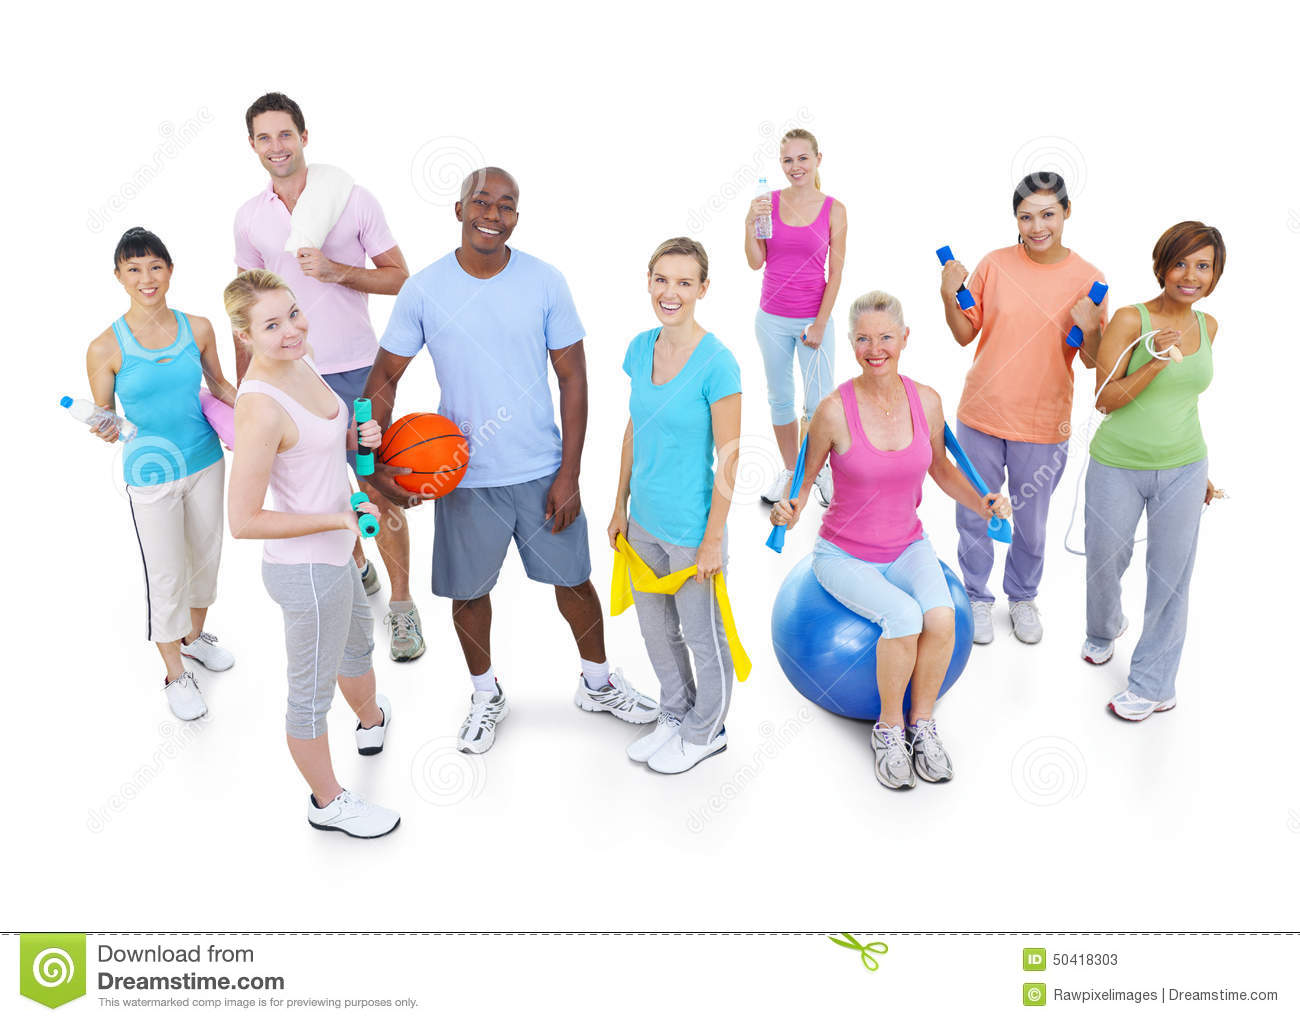 group-healthy-people-fitness-50418303.jpg